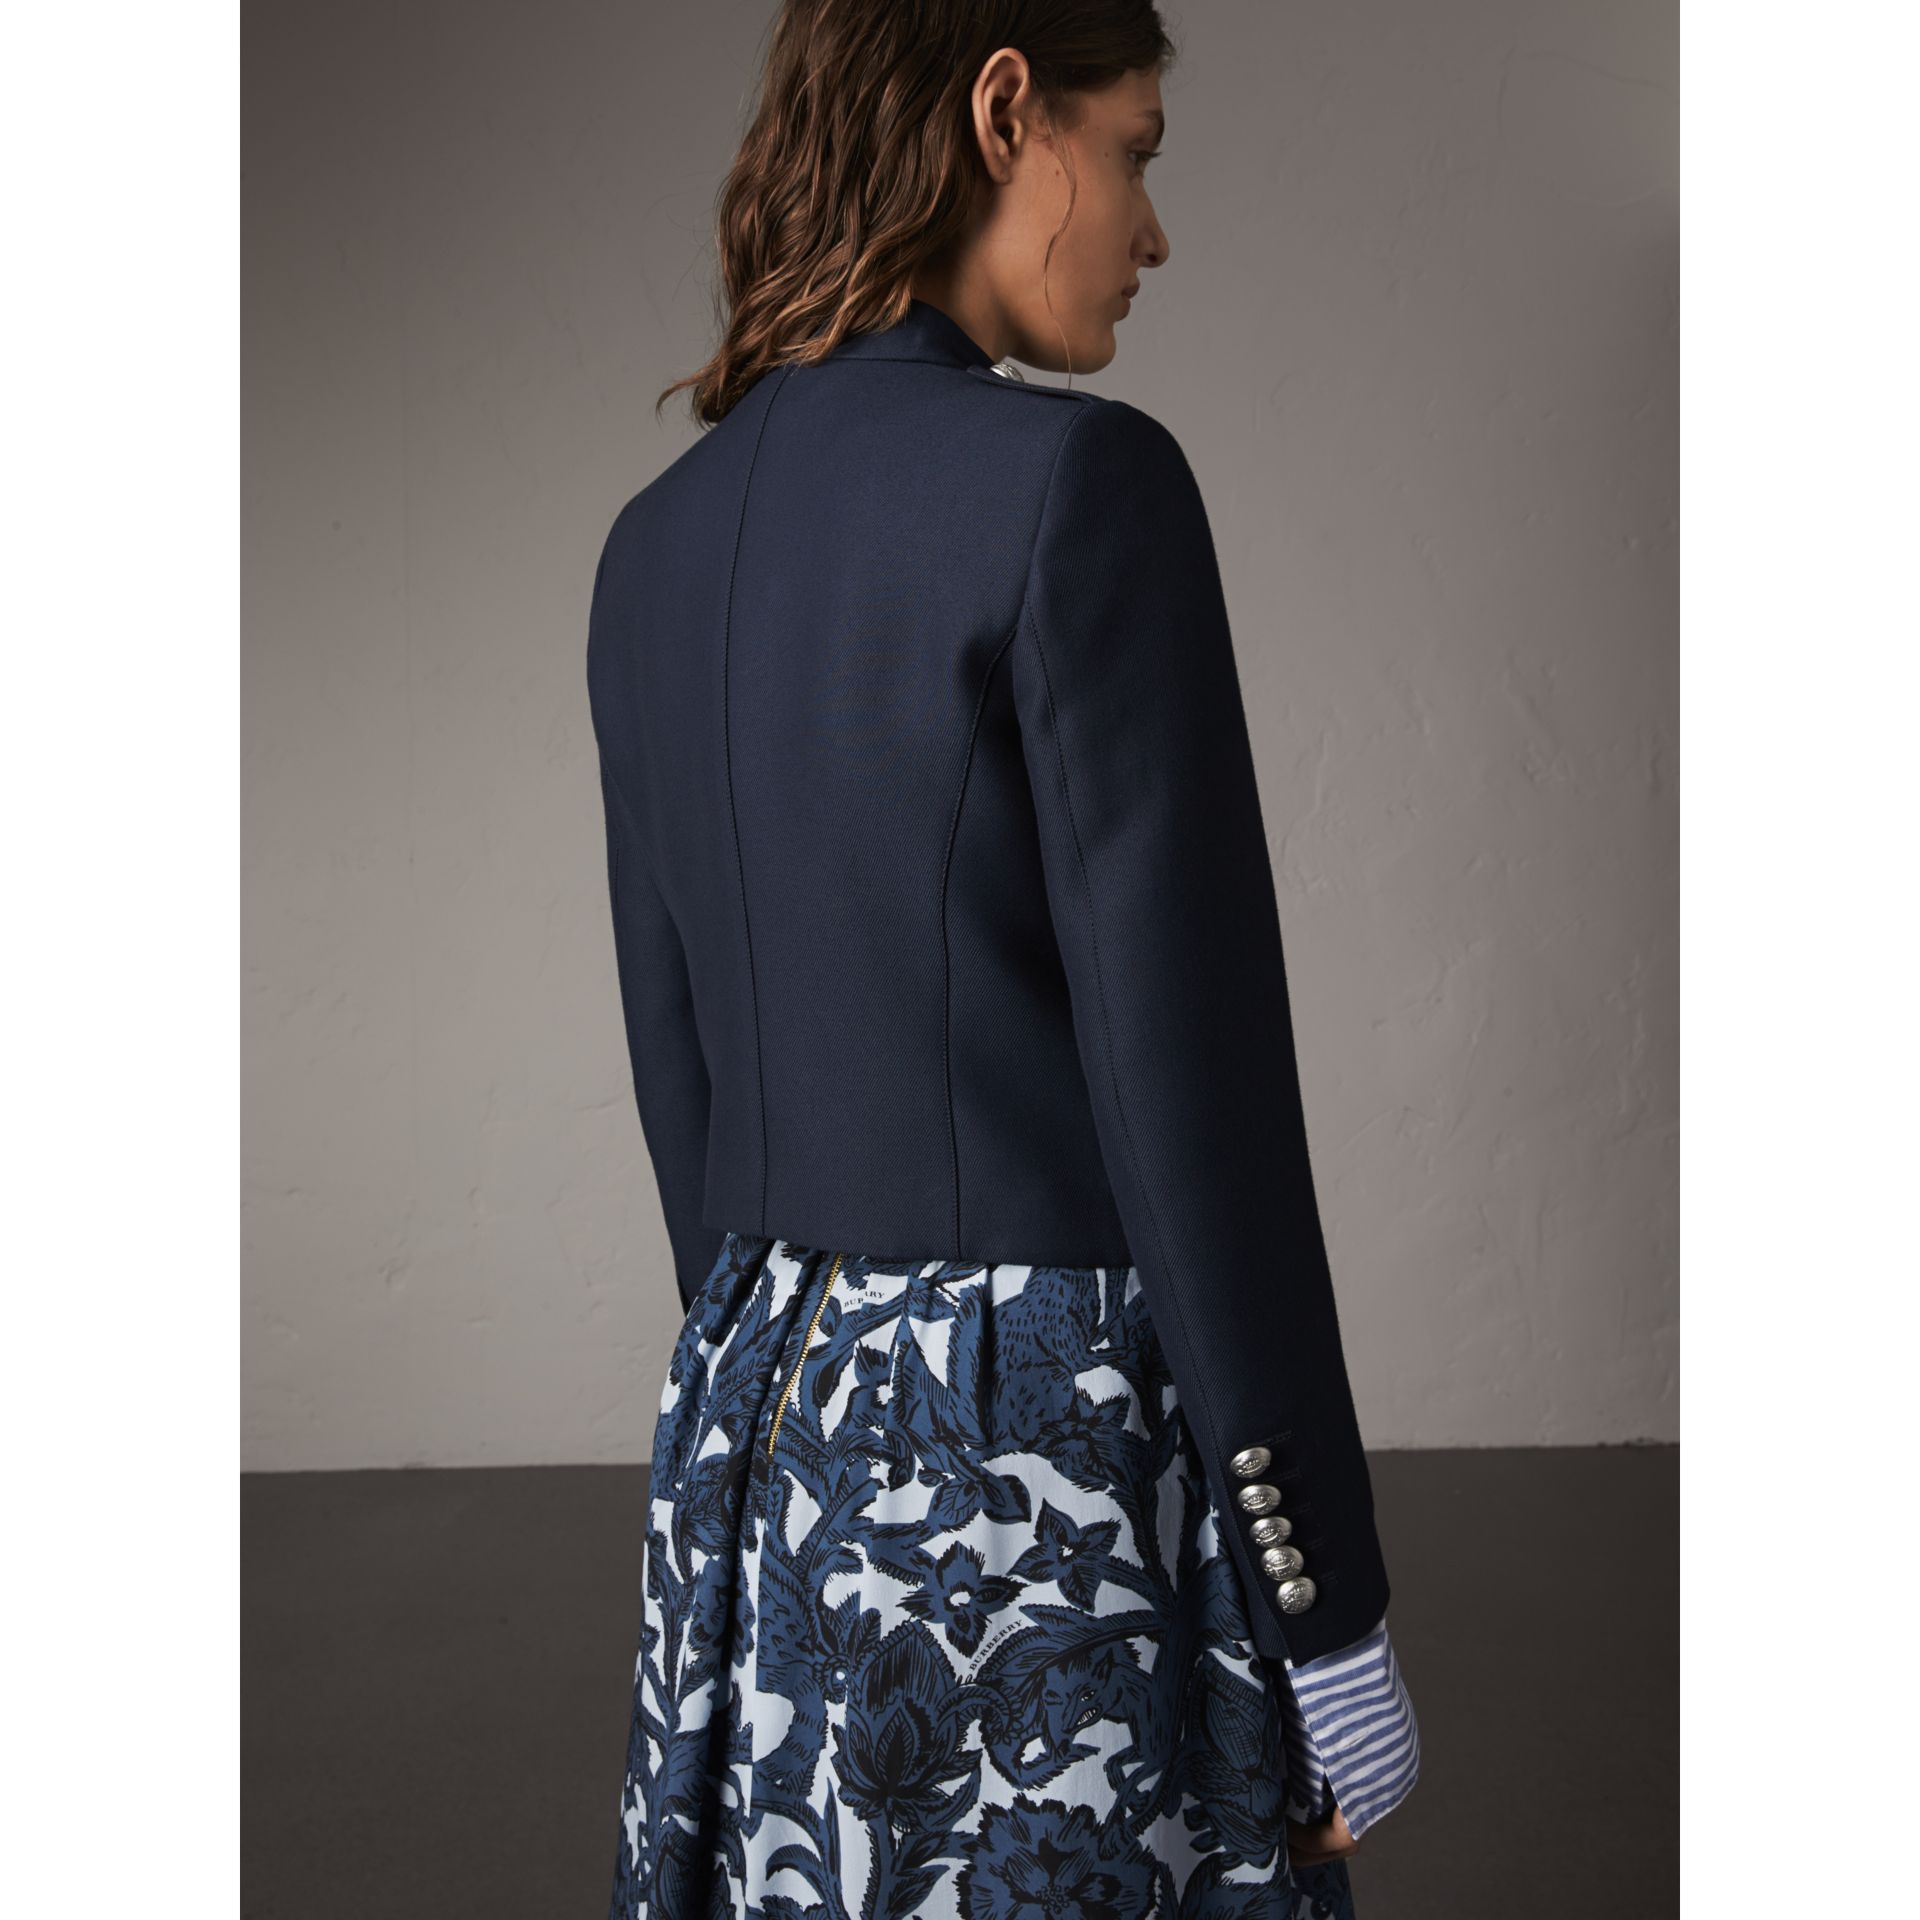 Resin Button Wool Cotton Blend Jacket in Ink Blue - Women | Burberry Australia - gallery image 3